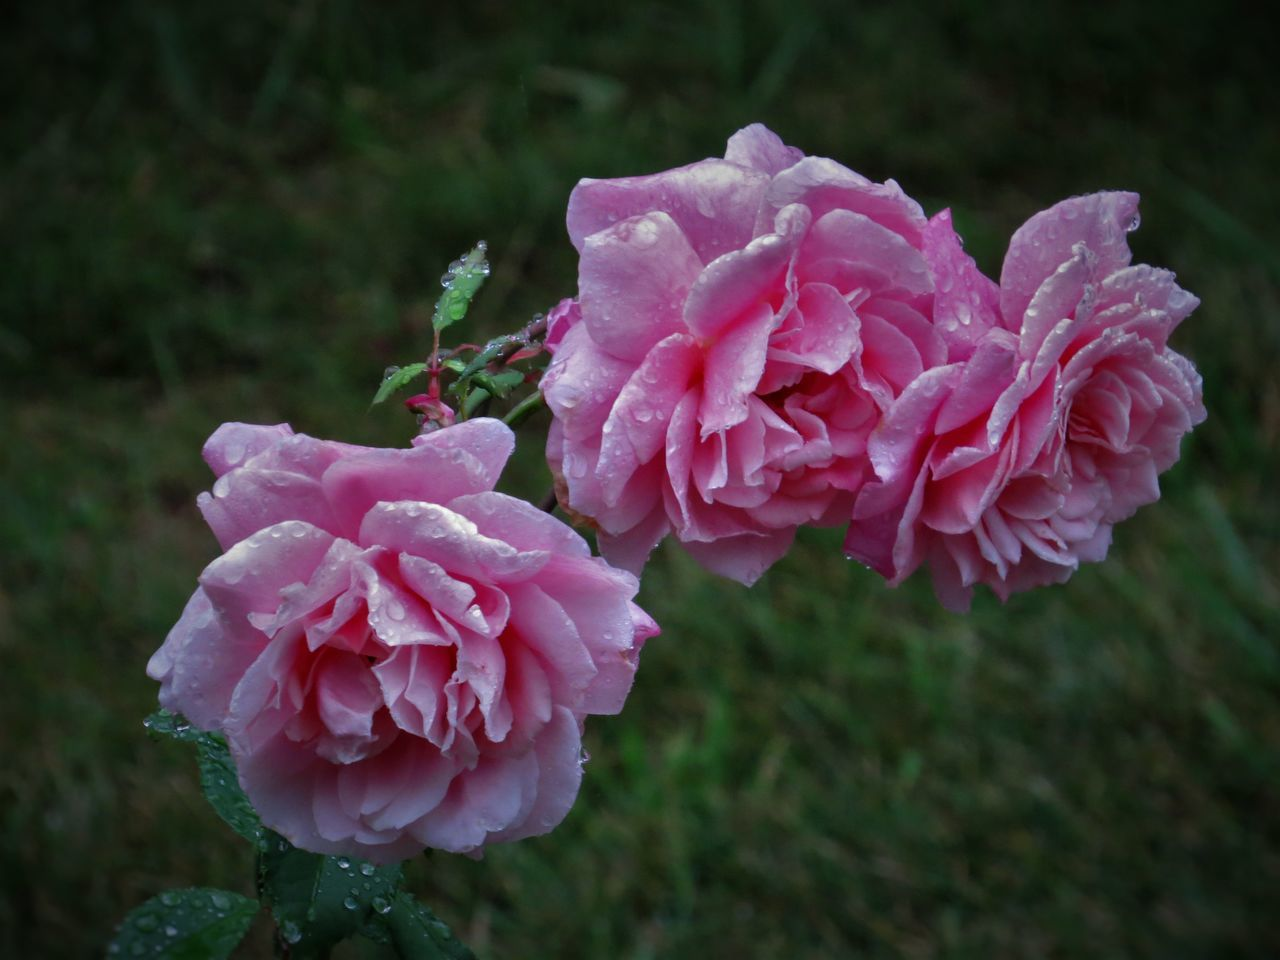 Close-Up Of Wet Pink Roses Growing On Plant